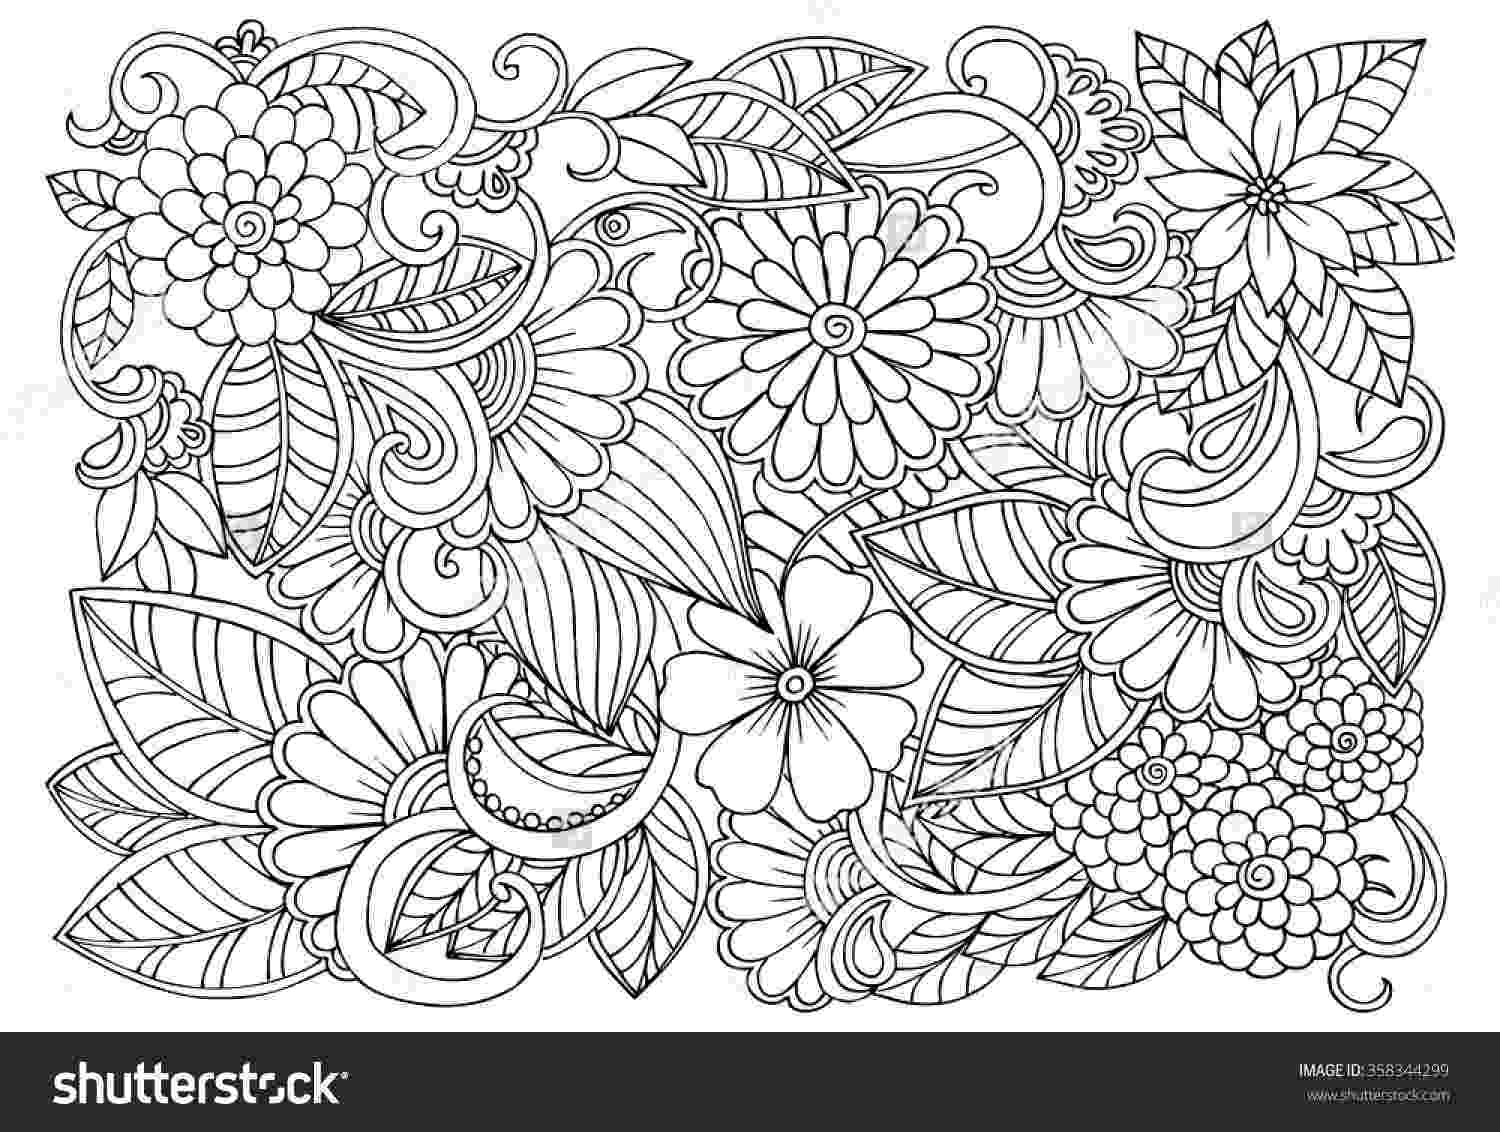 black and white coloring pages for adults peacock adult antistress coloring page black and white pages for adults coloring white black and